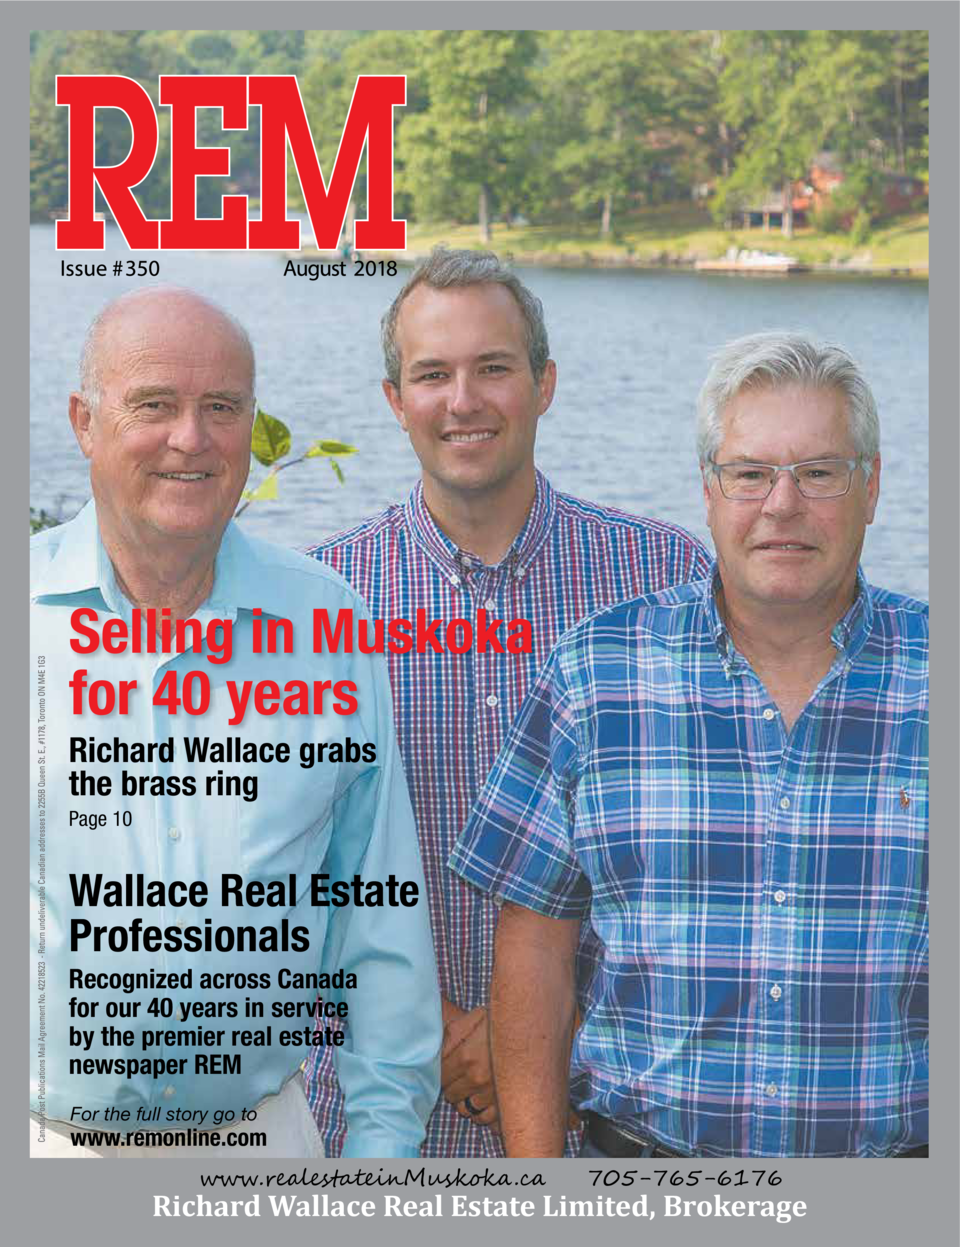 Selling in Muskoka for 40 years Richard Wallace grabs the brass ring Page 10  Wallace Real Estate Professionals  Recognize...